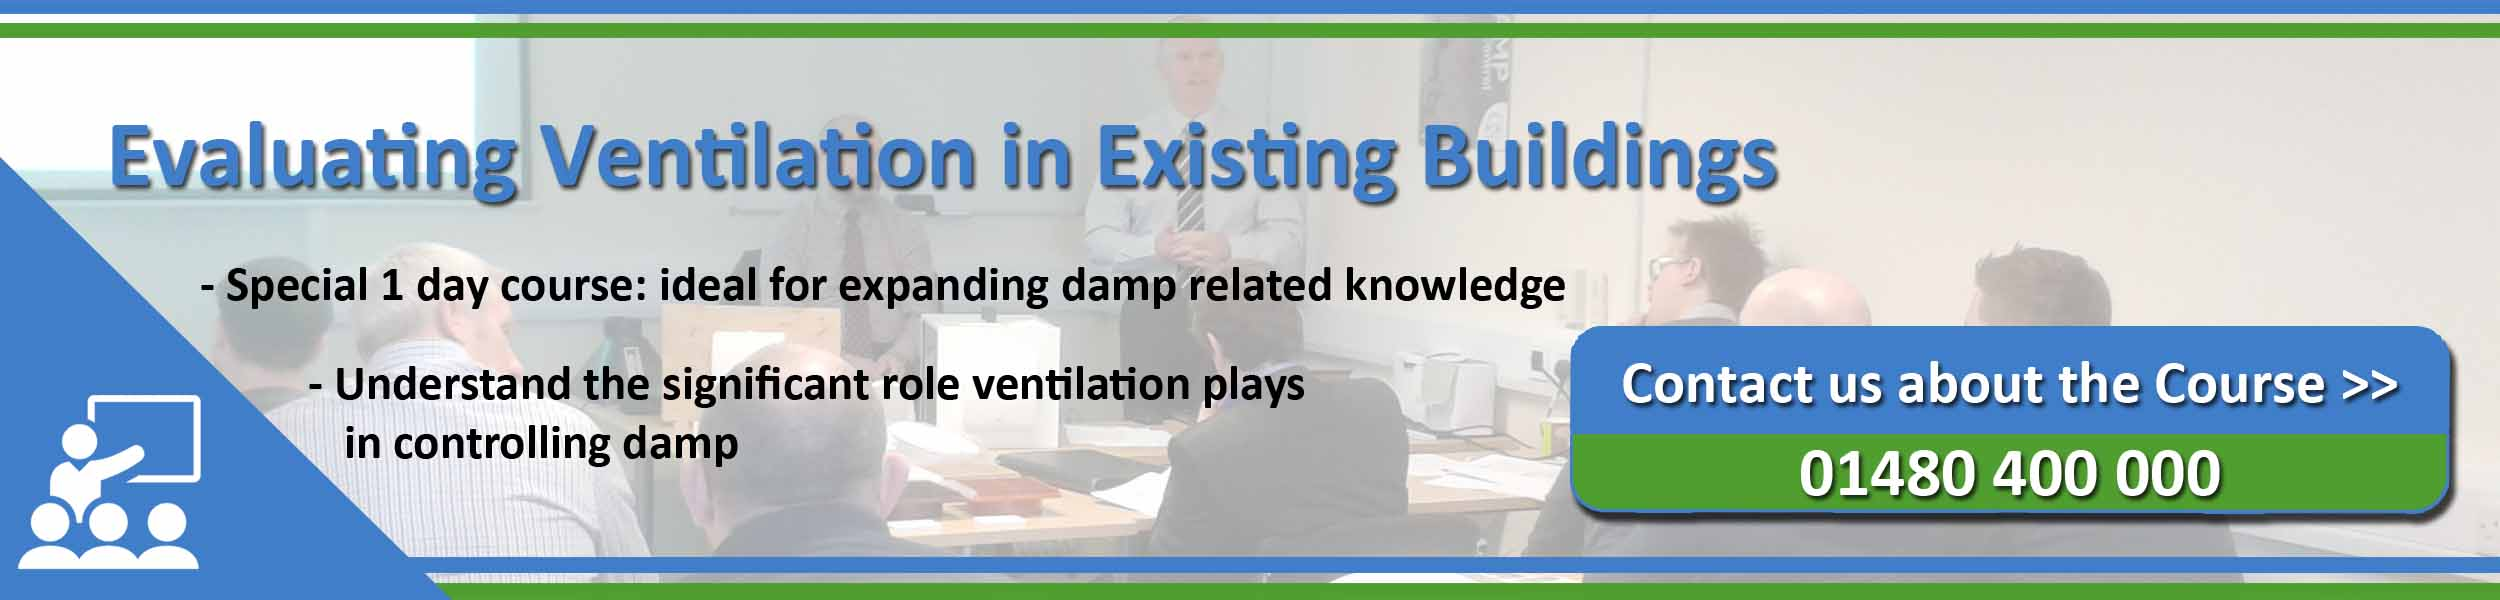 Evaluating Ventilation in Existing Buildings